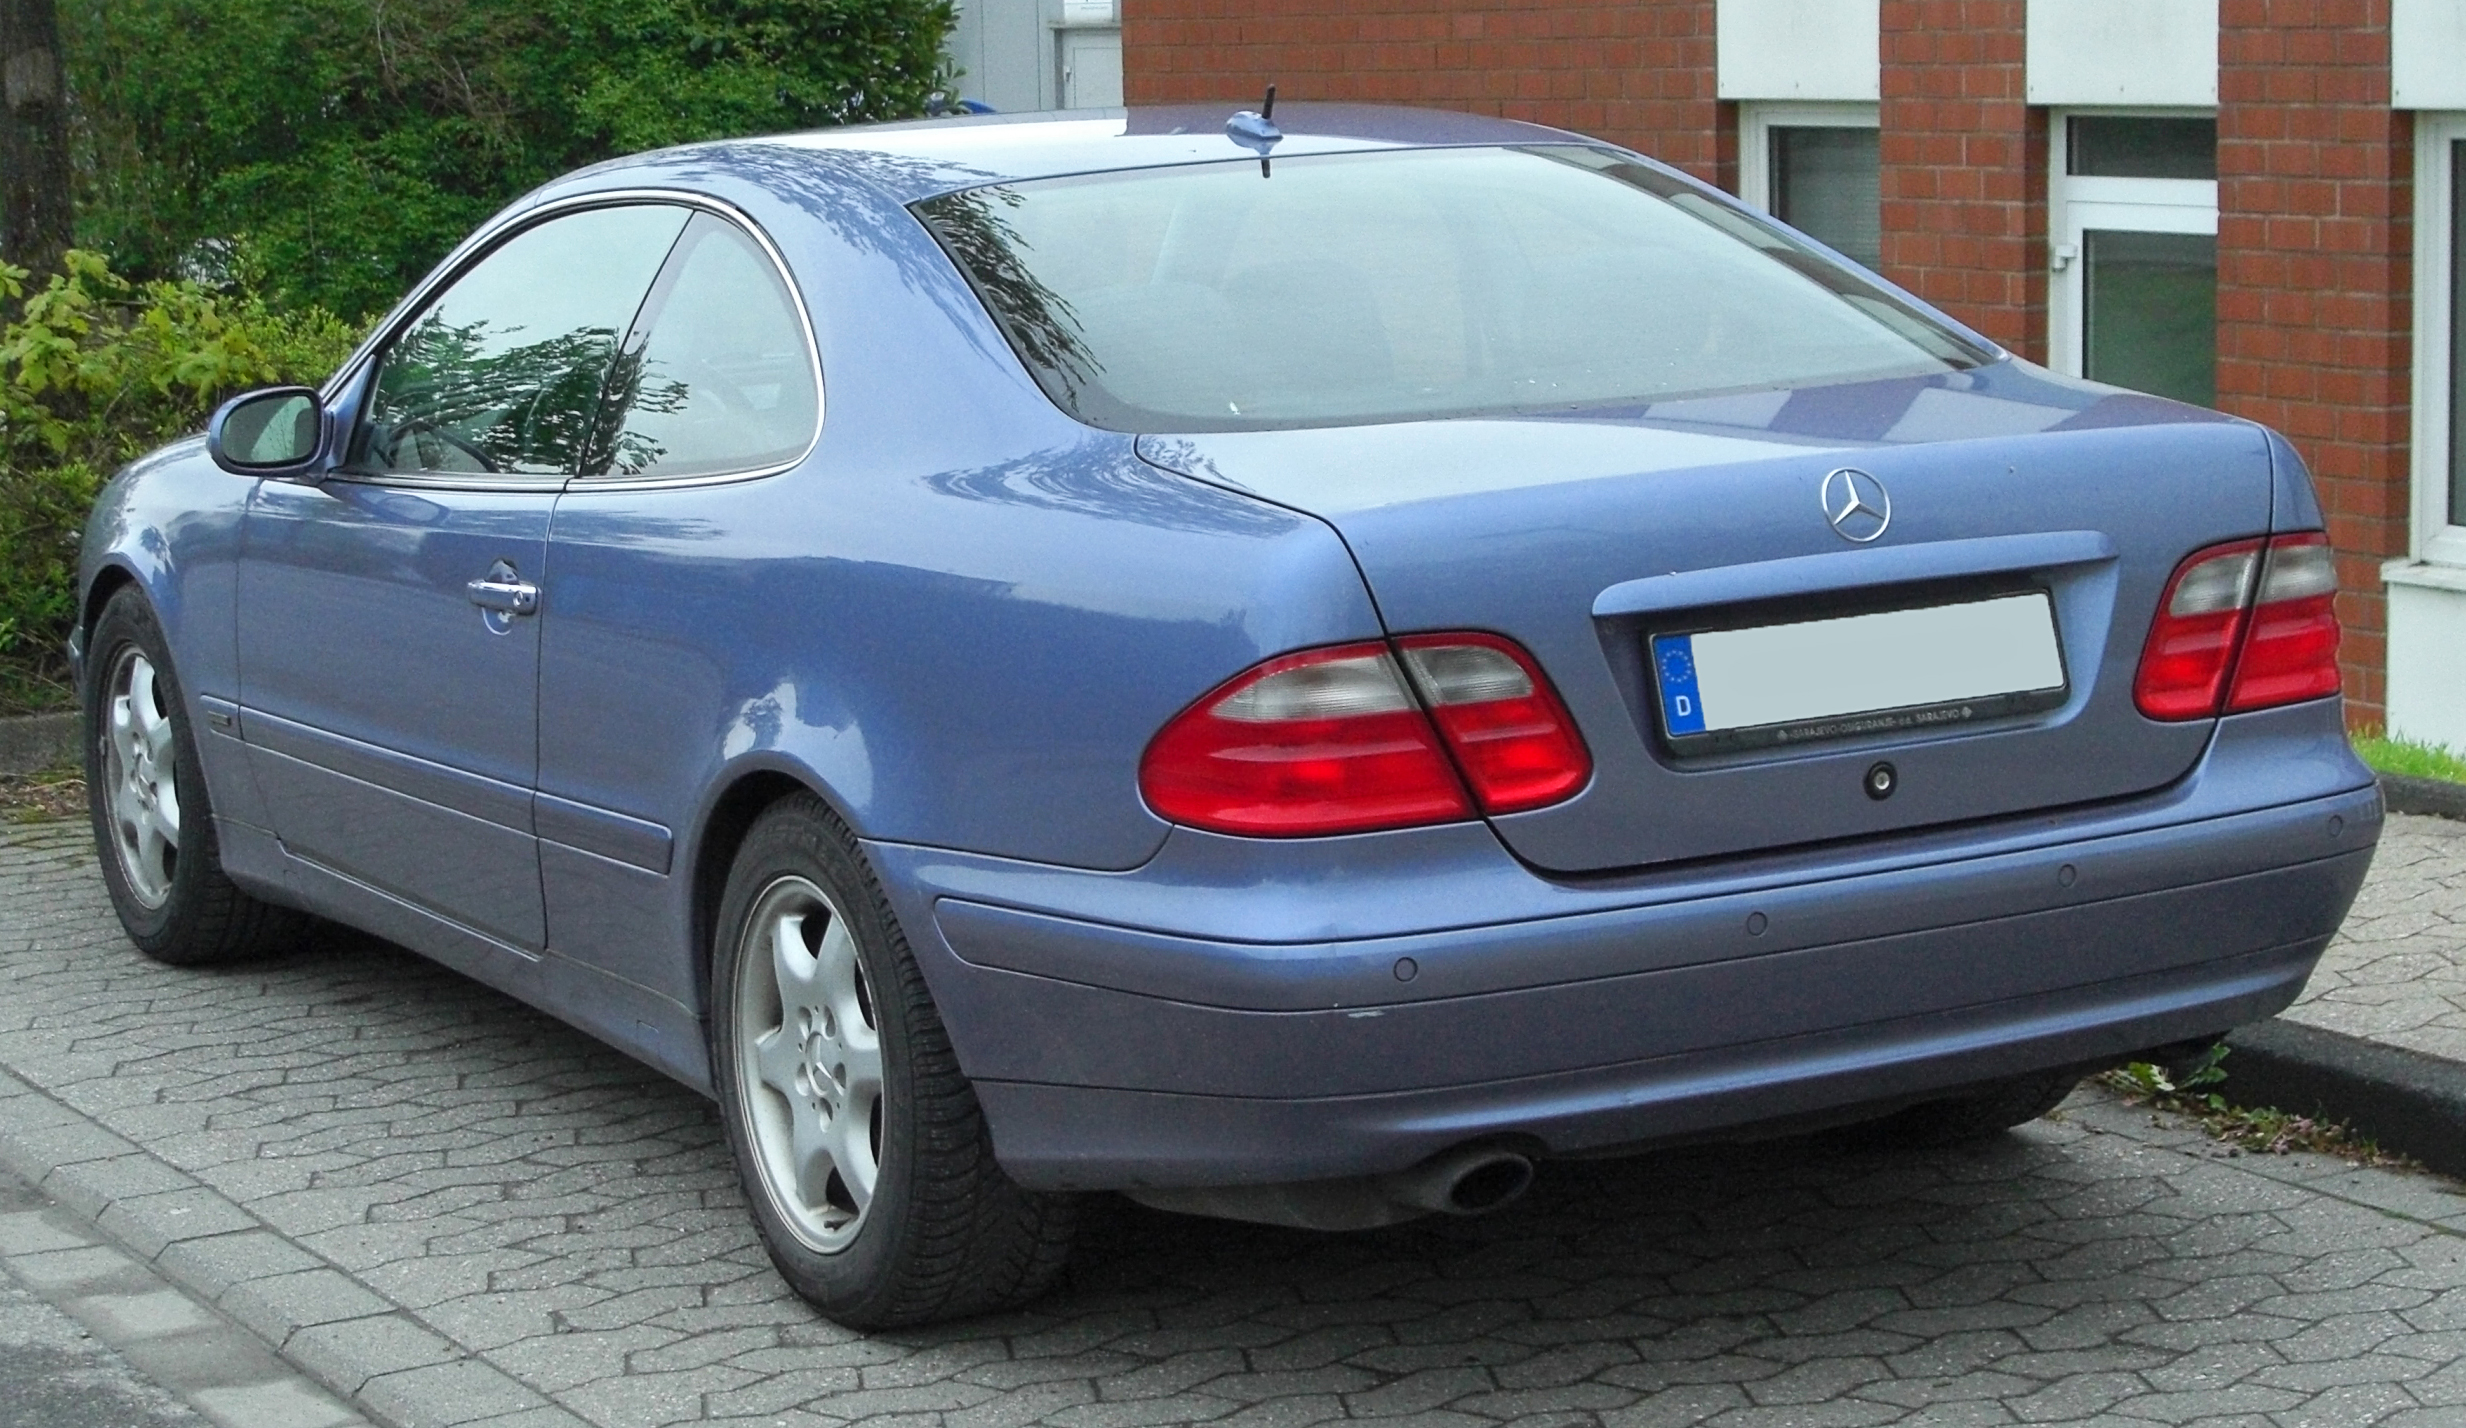 512557 Sexiest Bodykit Ever likewise 200 Elegance 1997 029612 also Watch furthermore Watch together with 4602 Mercedesbenz Clkclass 2000 10. on mercedes benz clk430